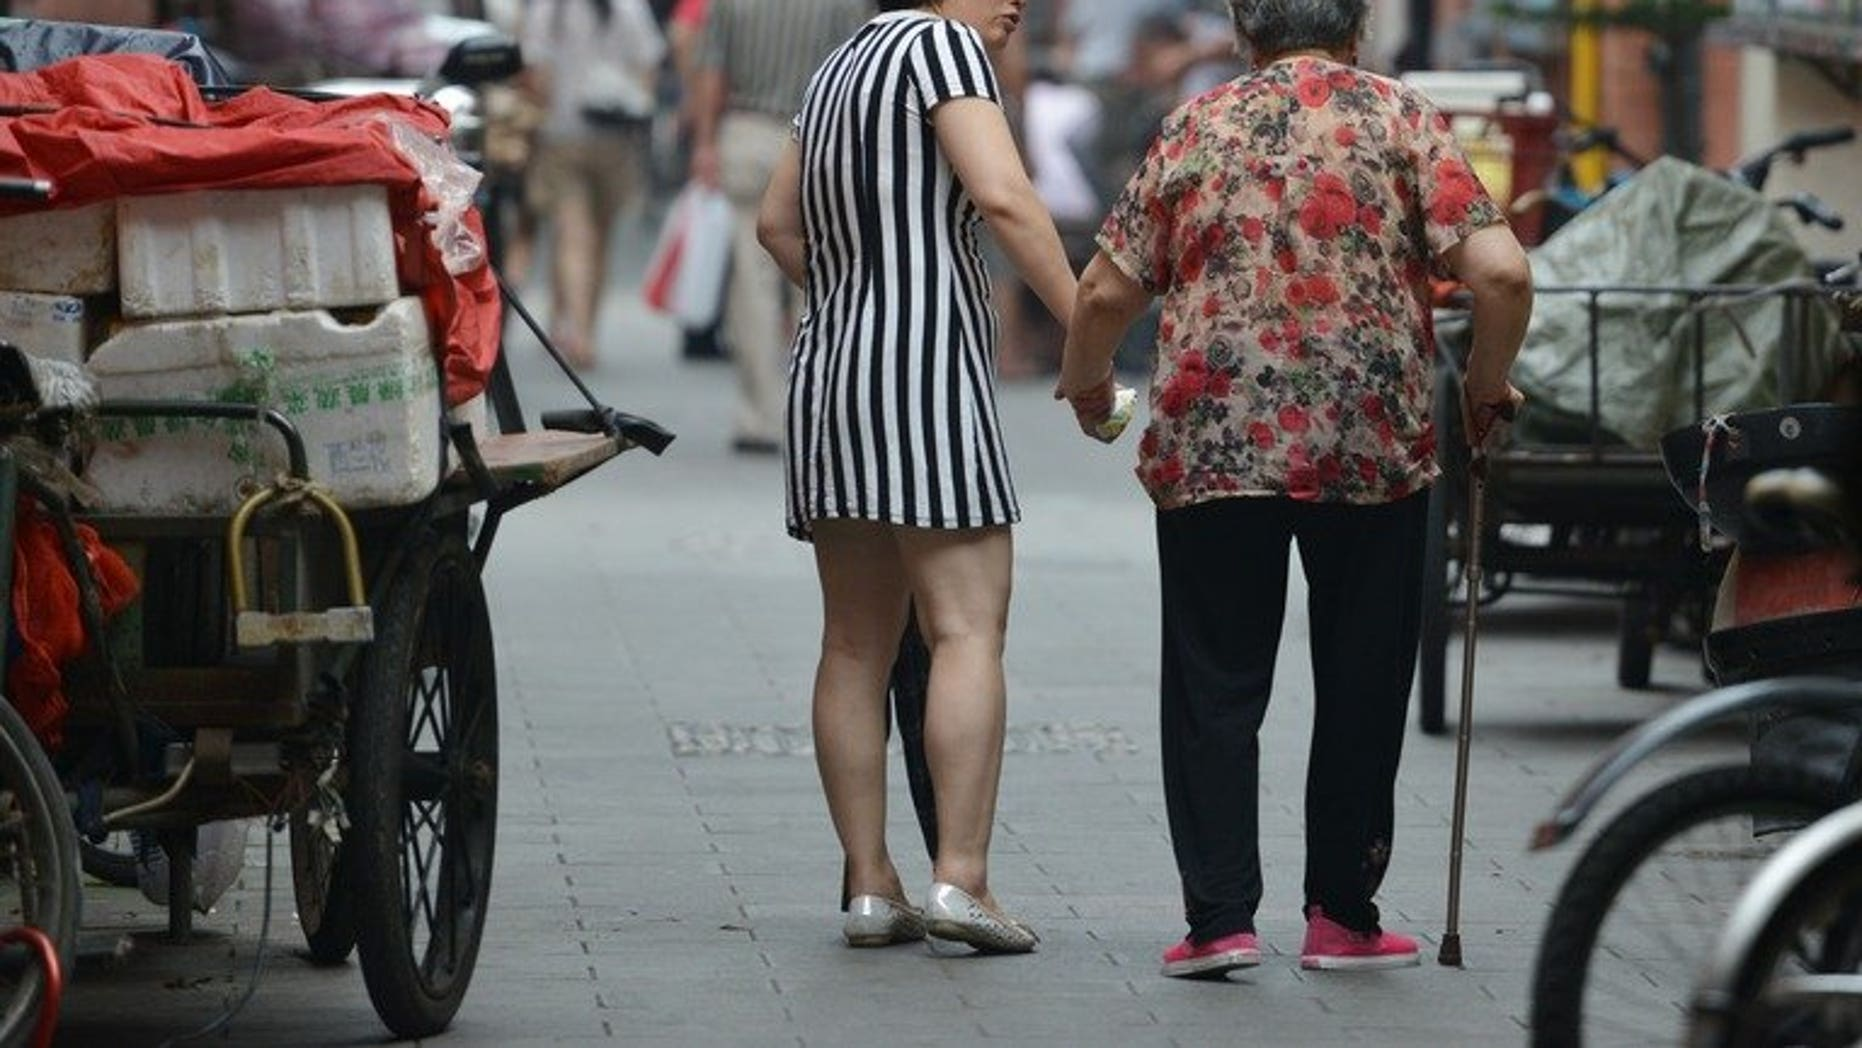 """A mother and daughter are seen walking together in Shanghai, on July 1, 2013. The Law on Protection of the Rights and Interests of the Elderly says family members should visit relatives who are aged over 60 """"often"""" -- but does not give a precise definition of the term. More than 14 percent of China's population, or 194 million people, are aged over 60, according to the most recent figures."""